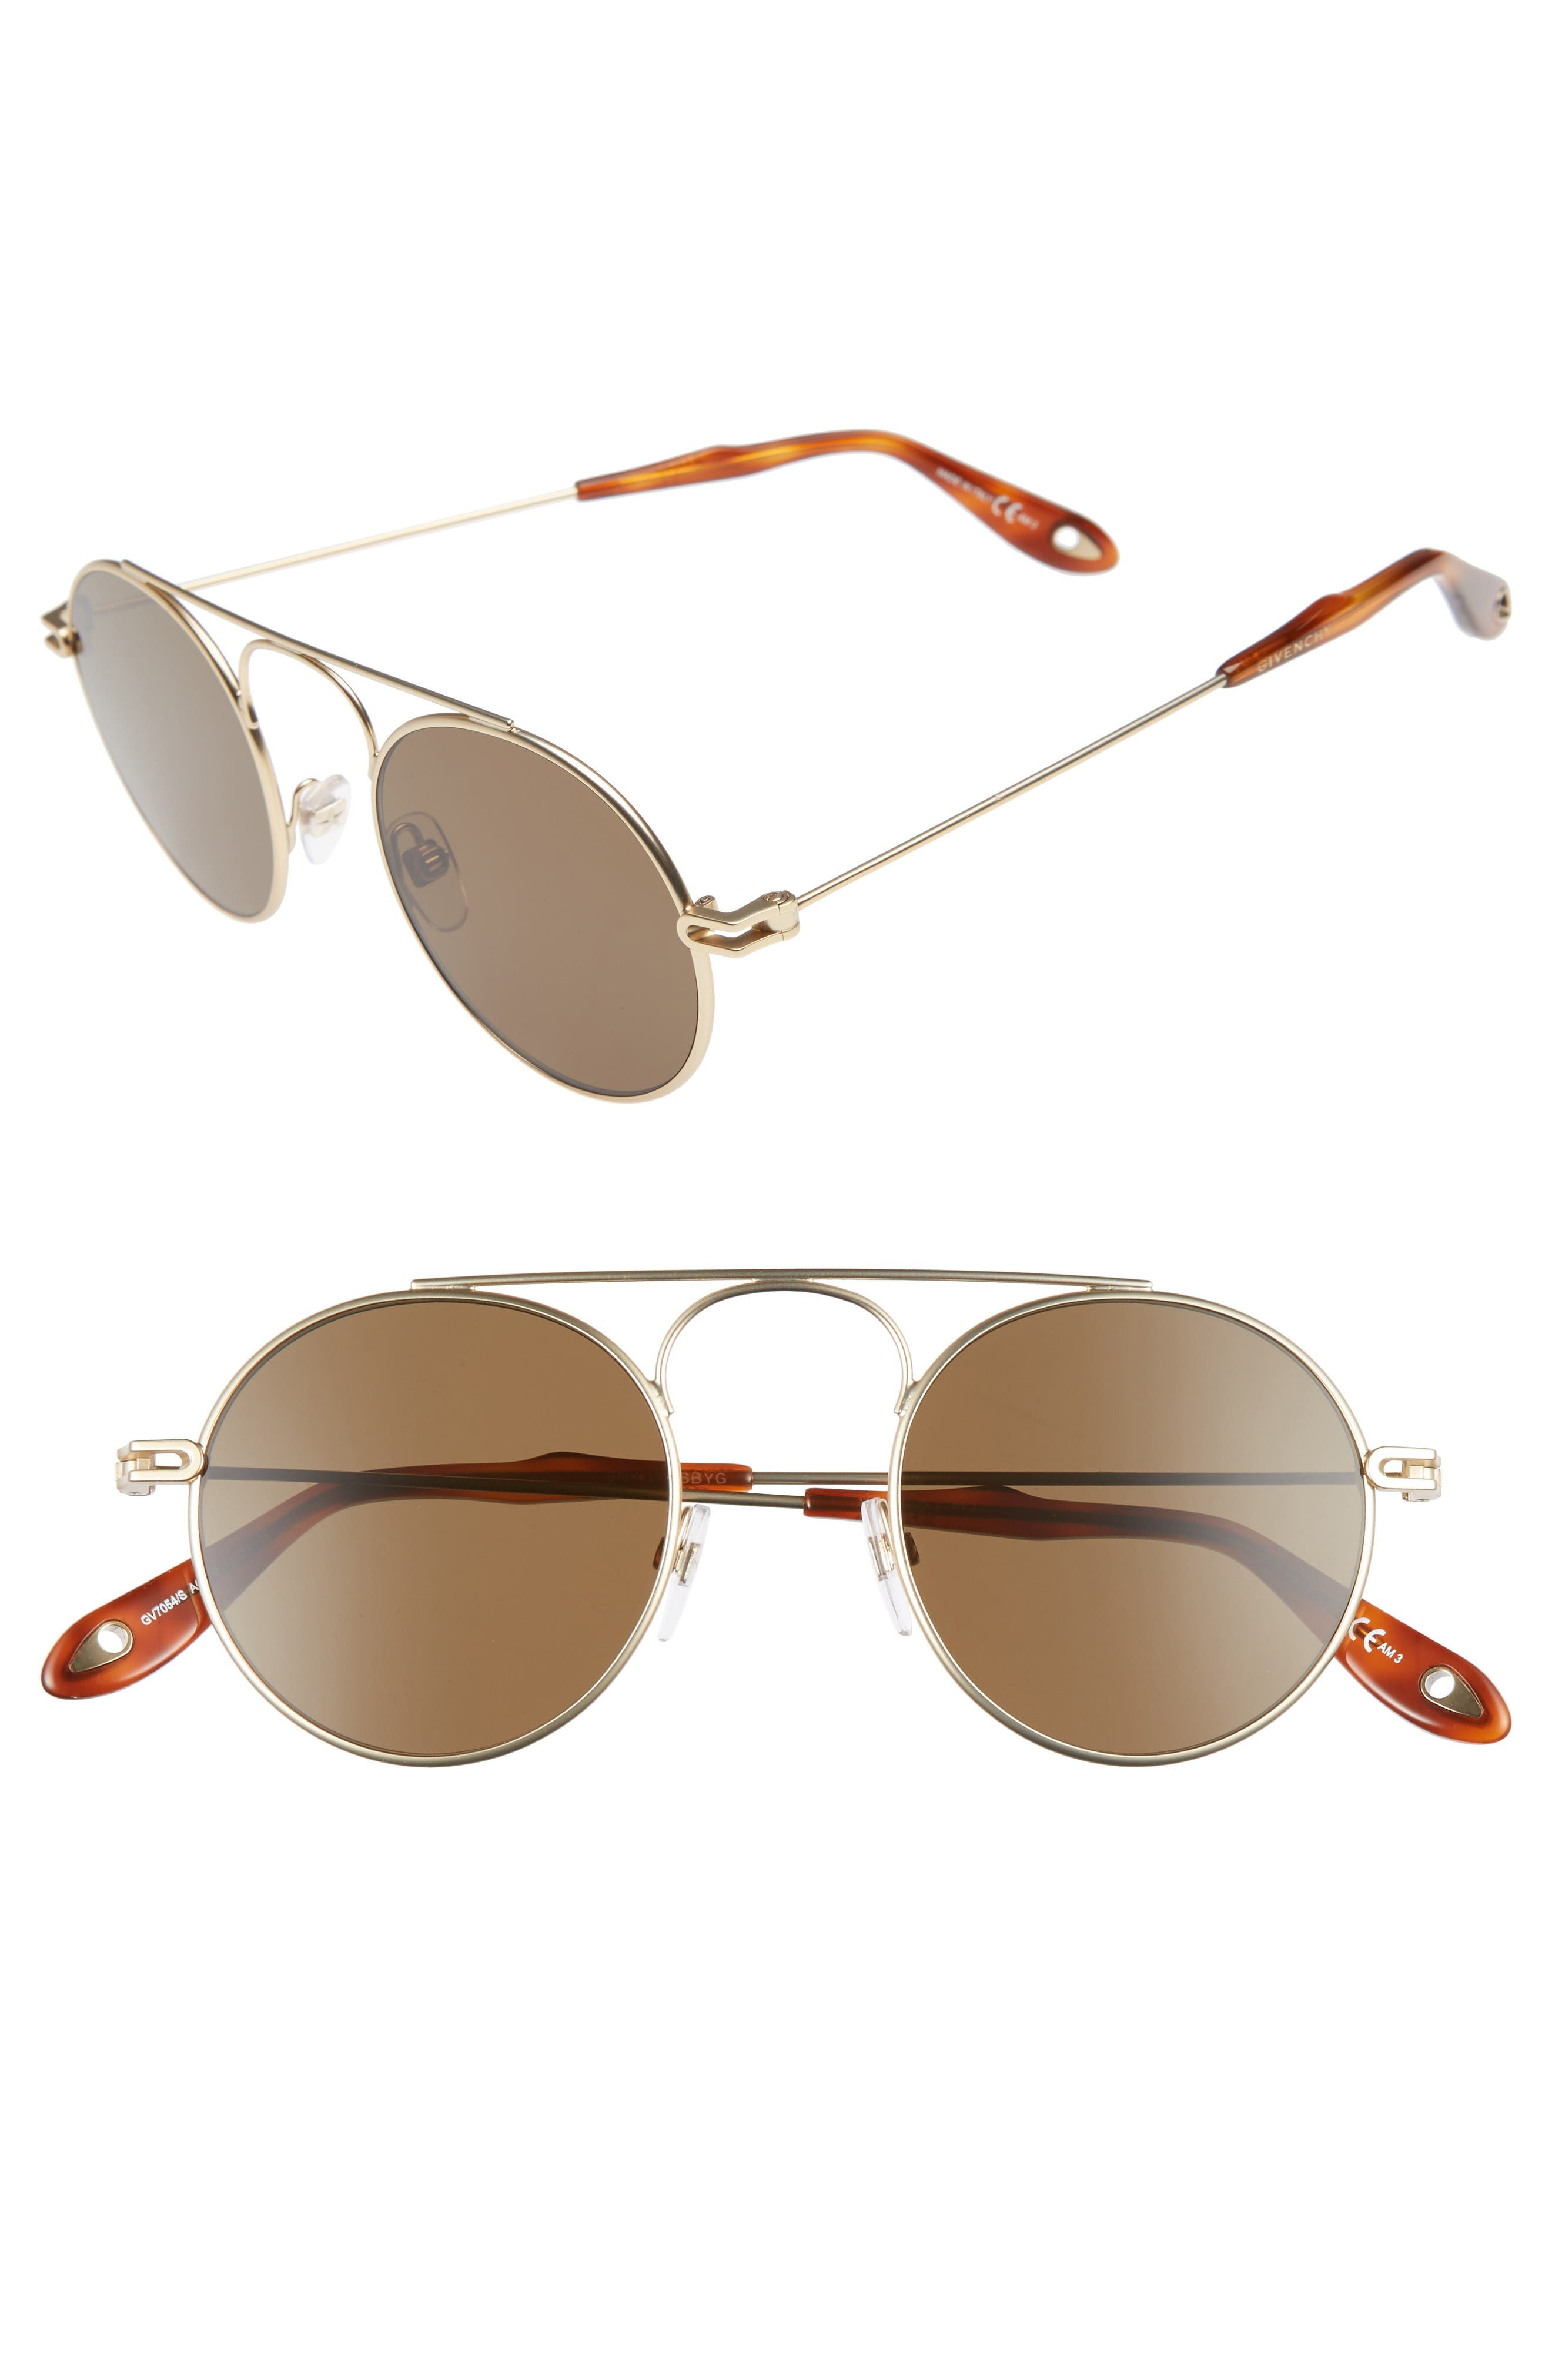 48mm Round Sunglasses,                         Main,                         color, Gold